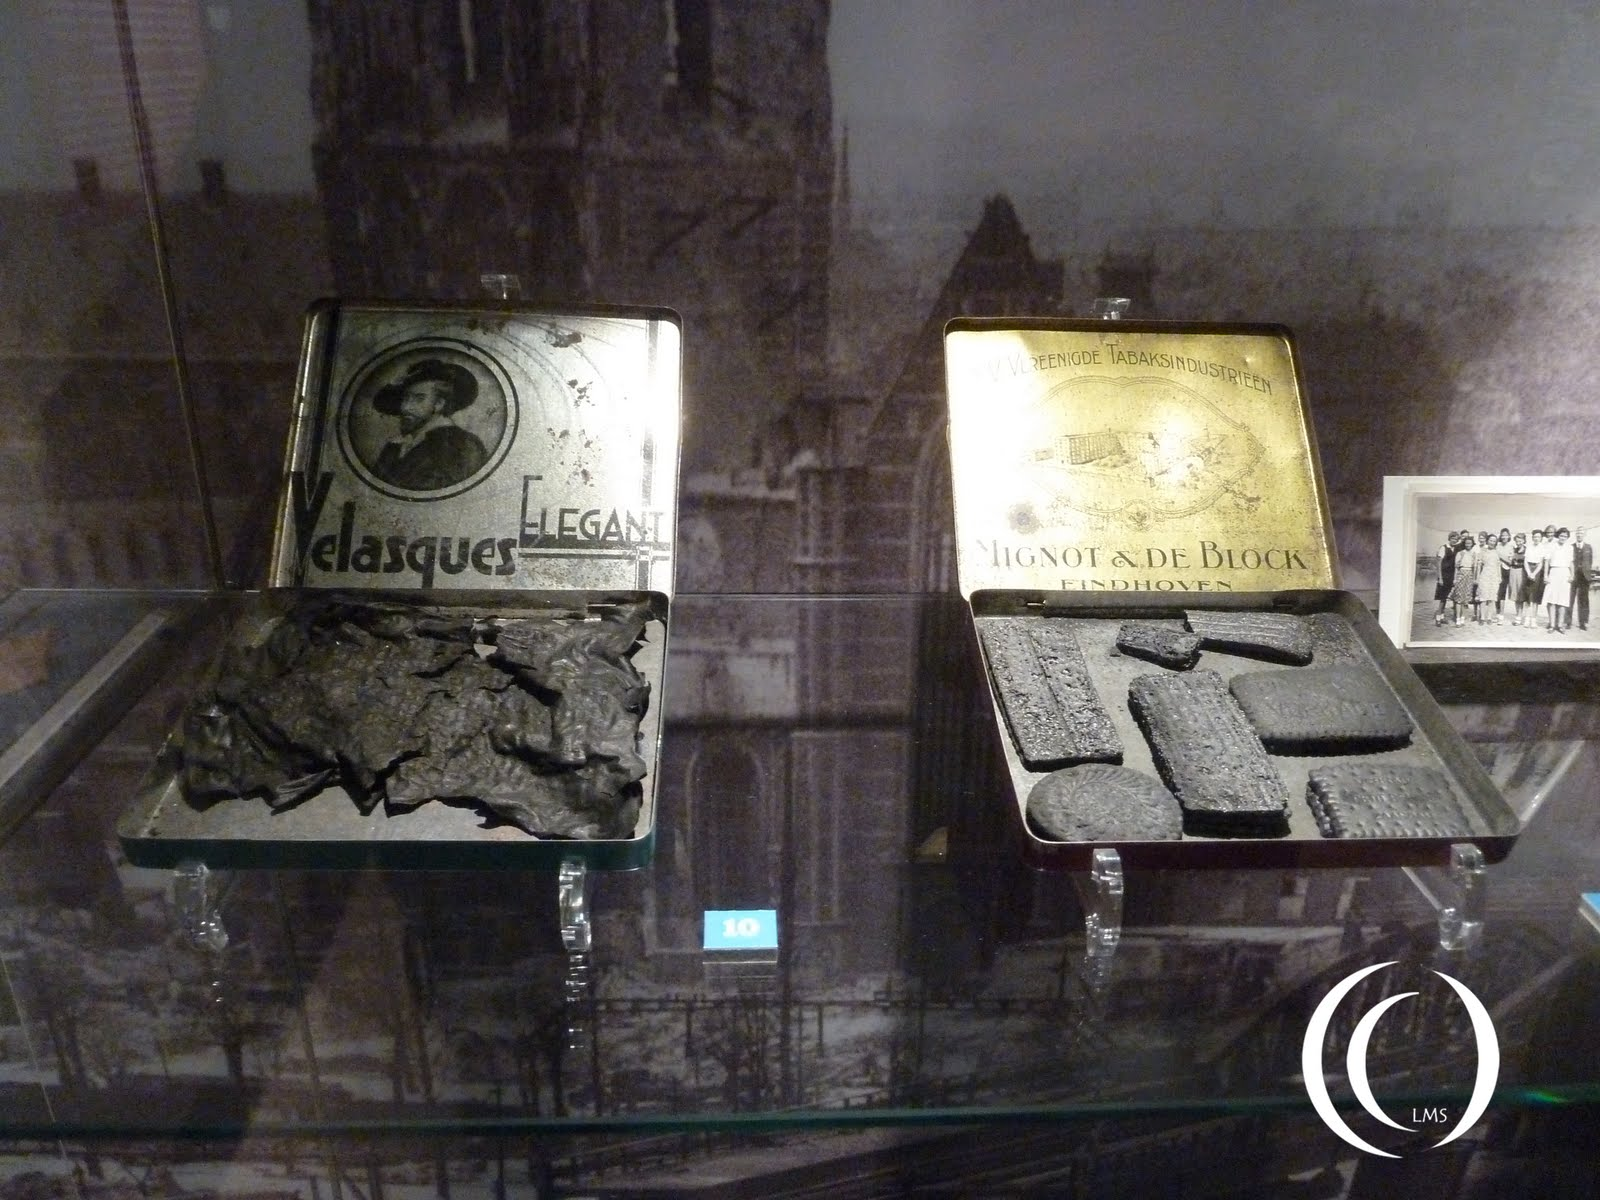 On the right flakes of ashes from Rotterdam, caught in Gouda and returned to the museum